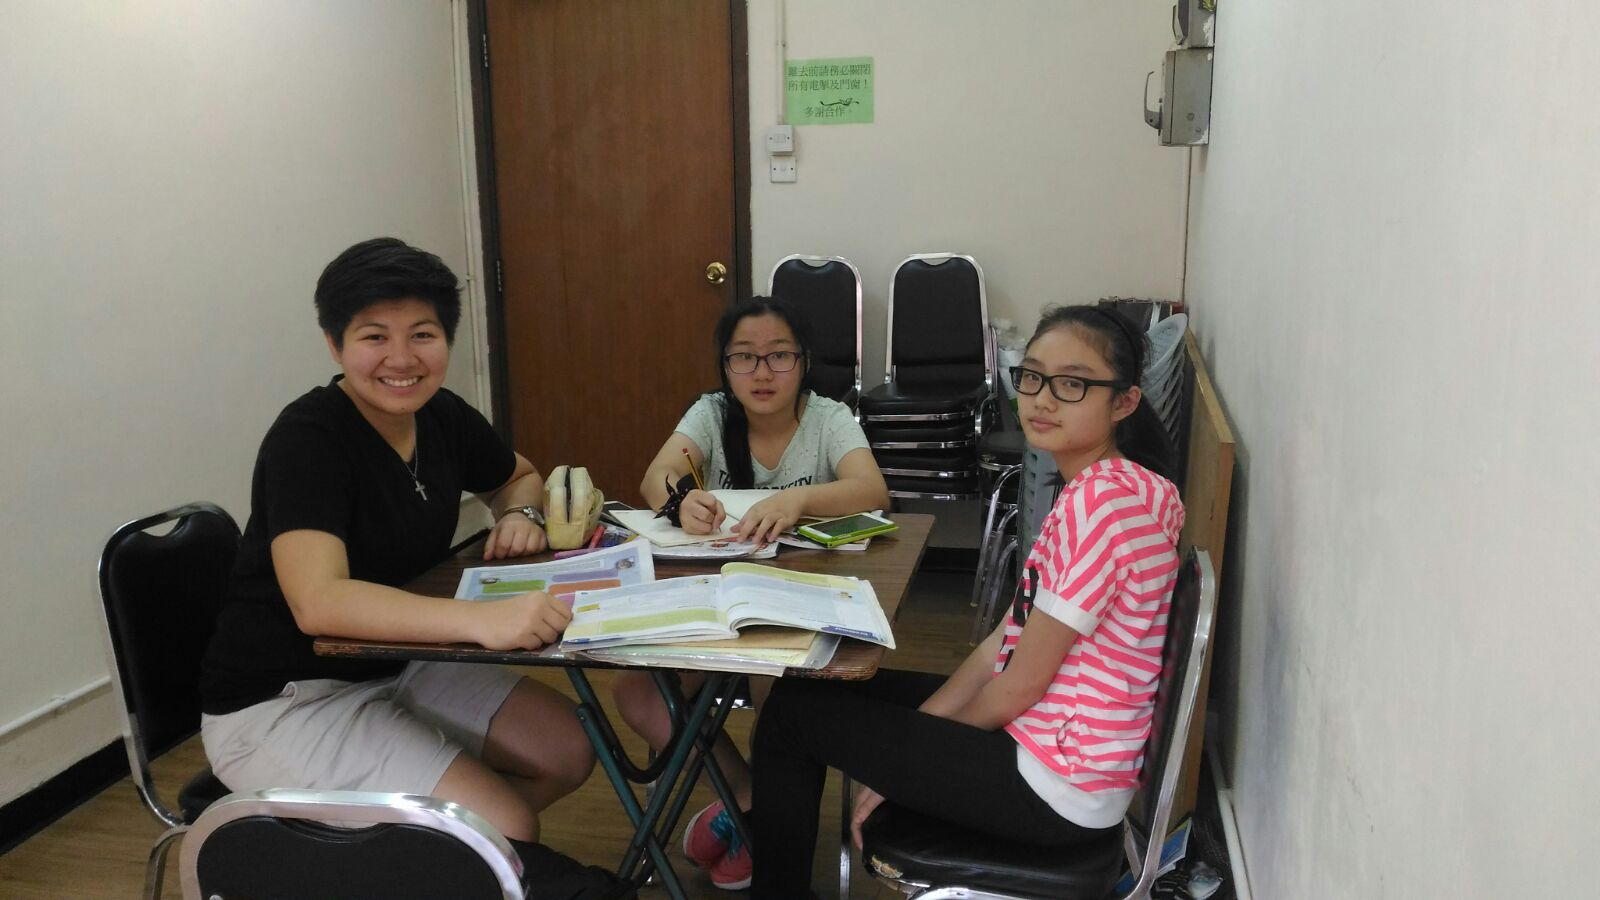 Franselaine with her two students on their first class